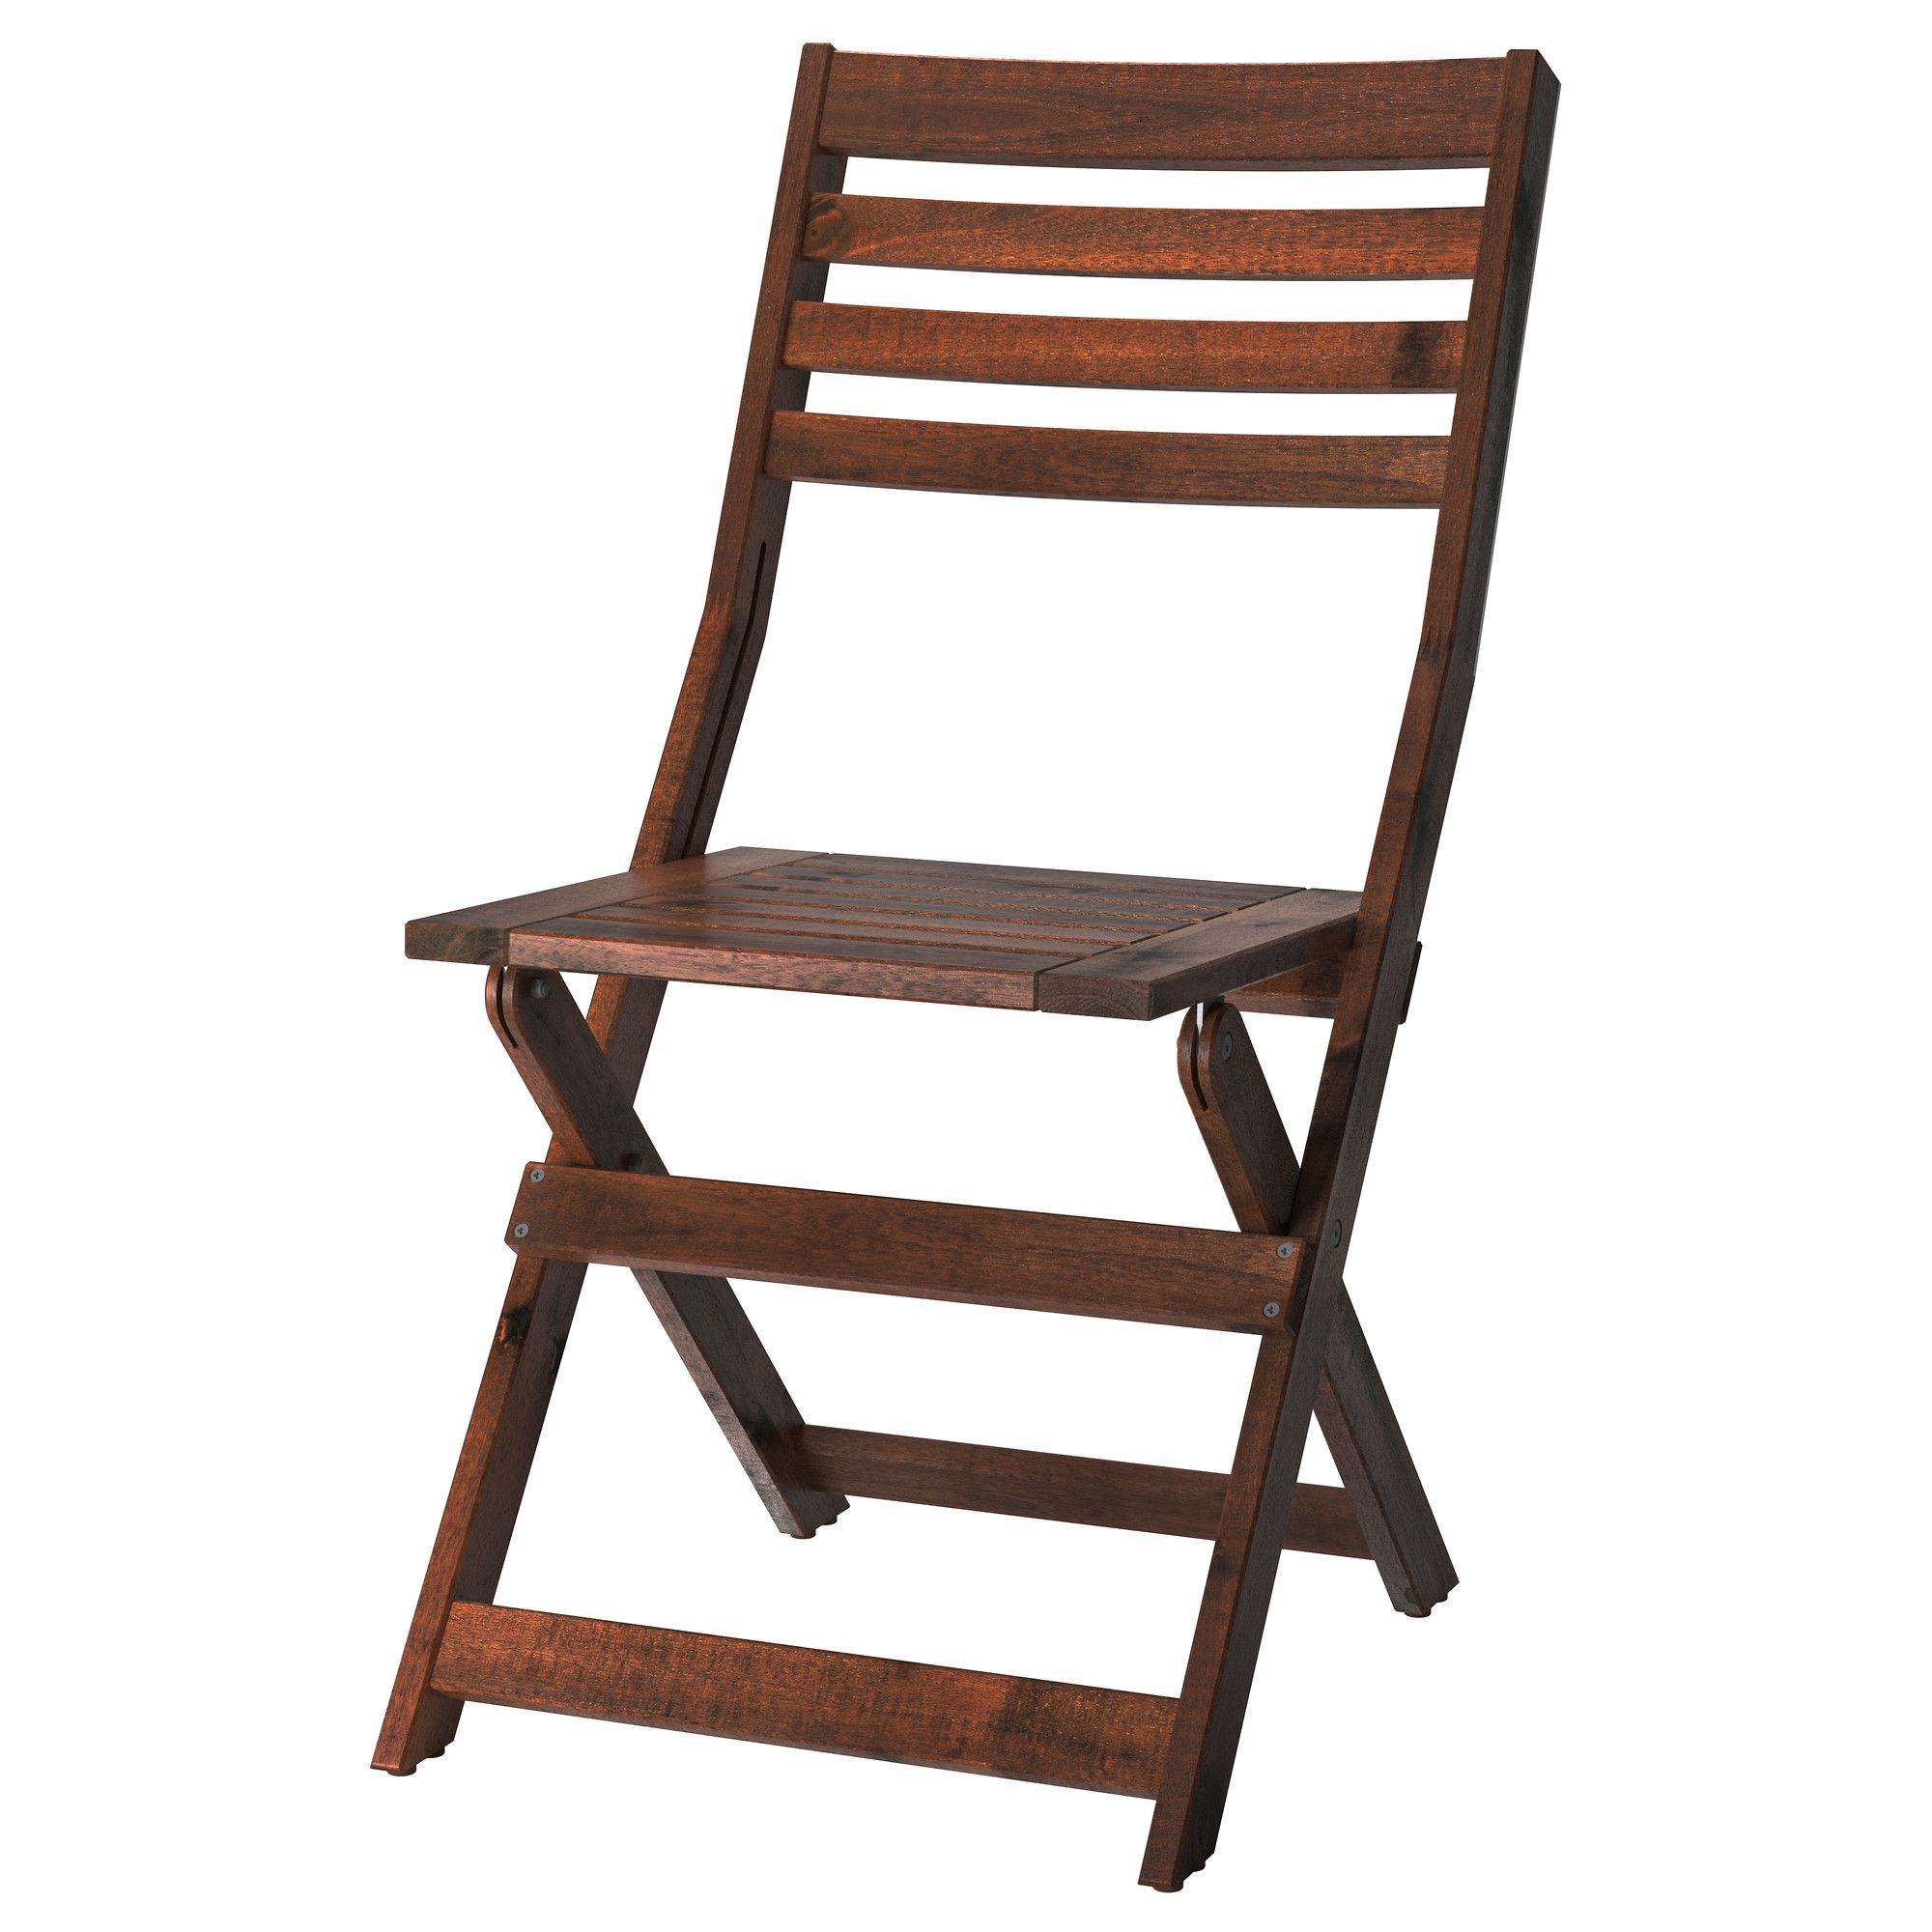 Ikea Us Furniture And Home Furnishings Outdoor Folding Chairs